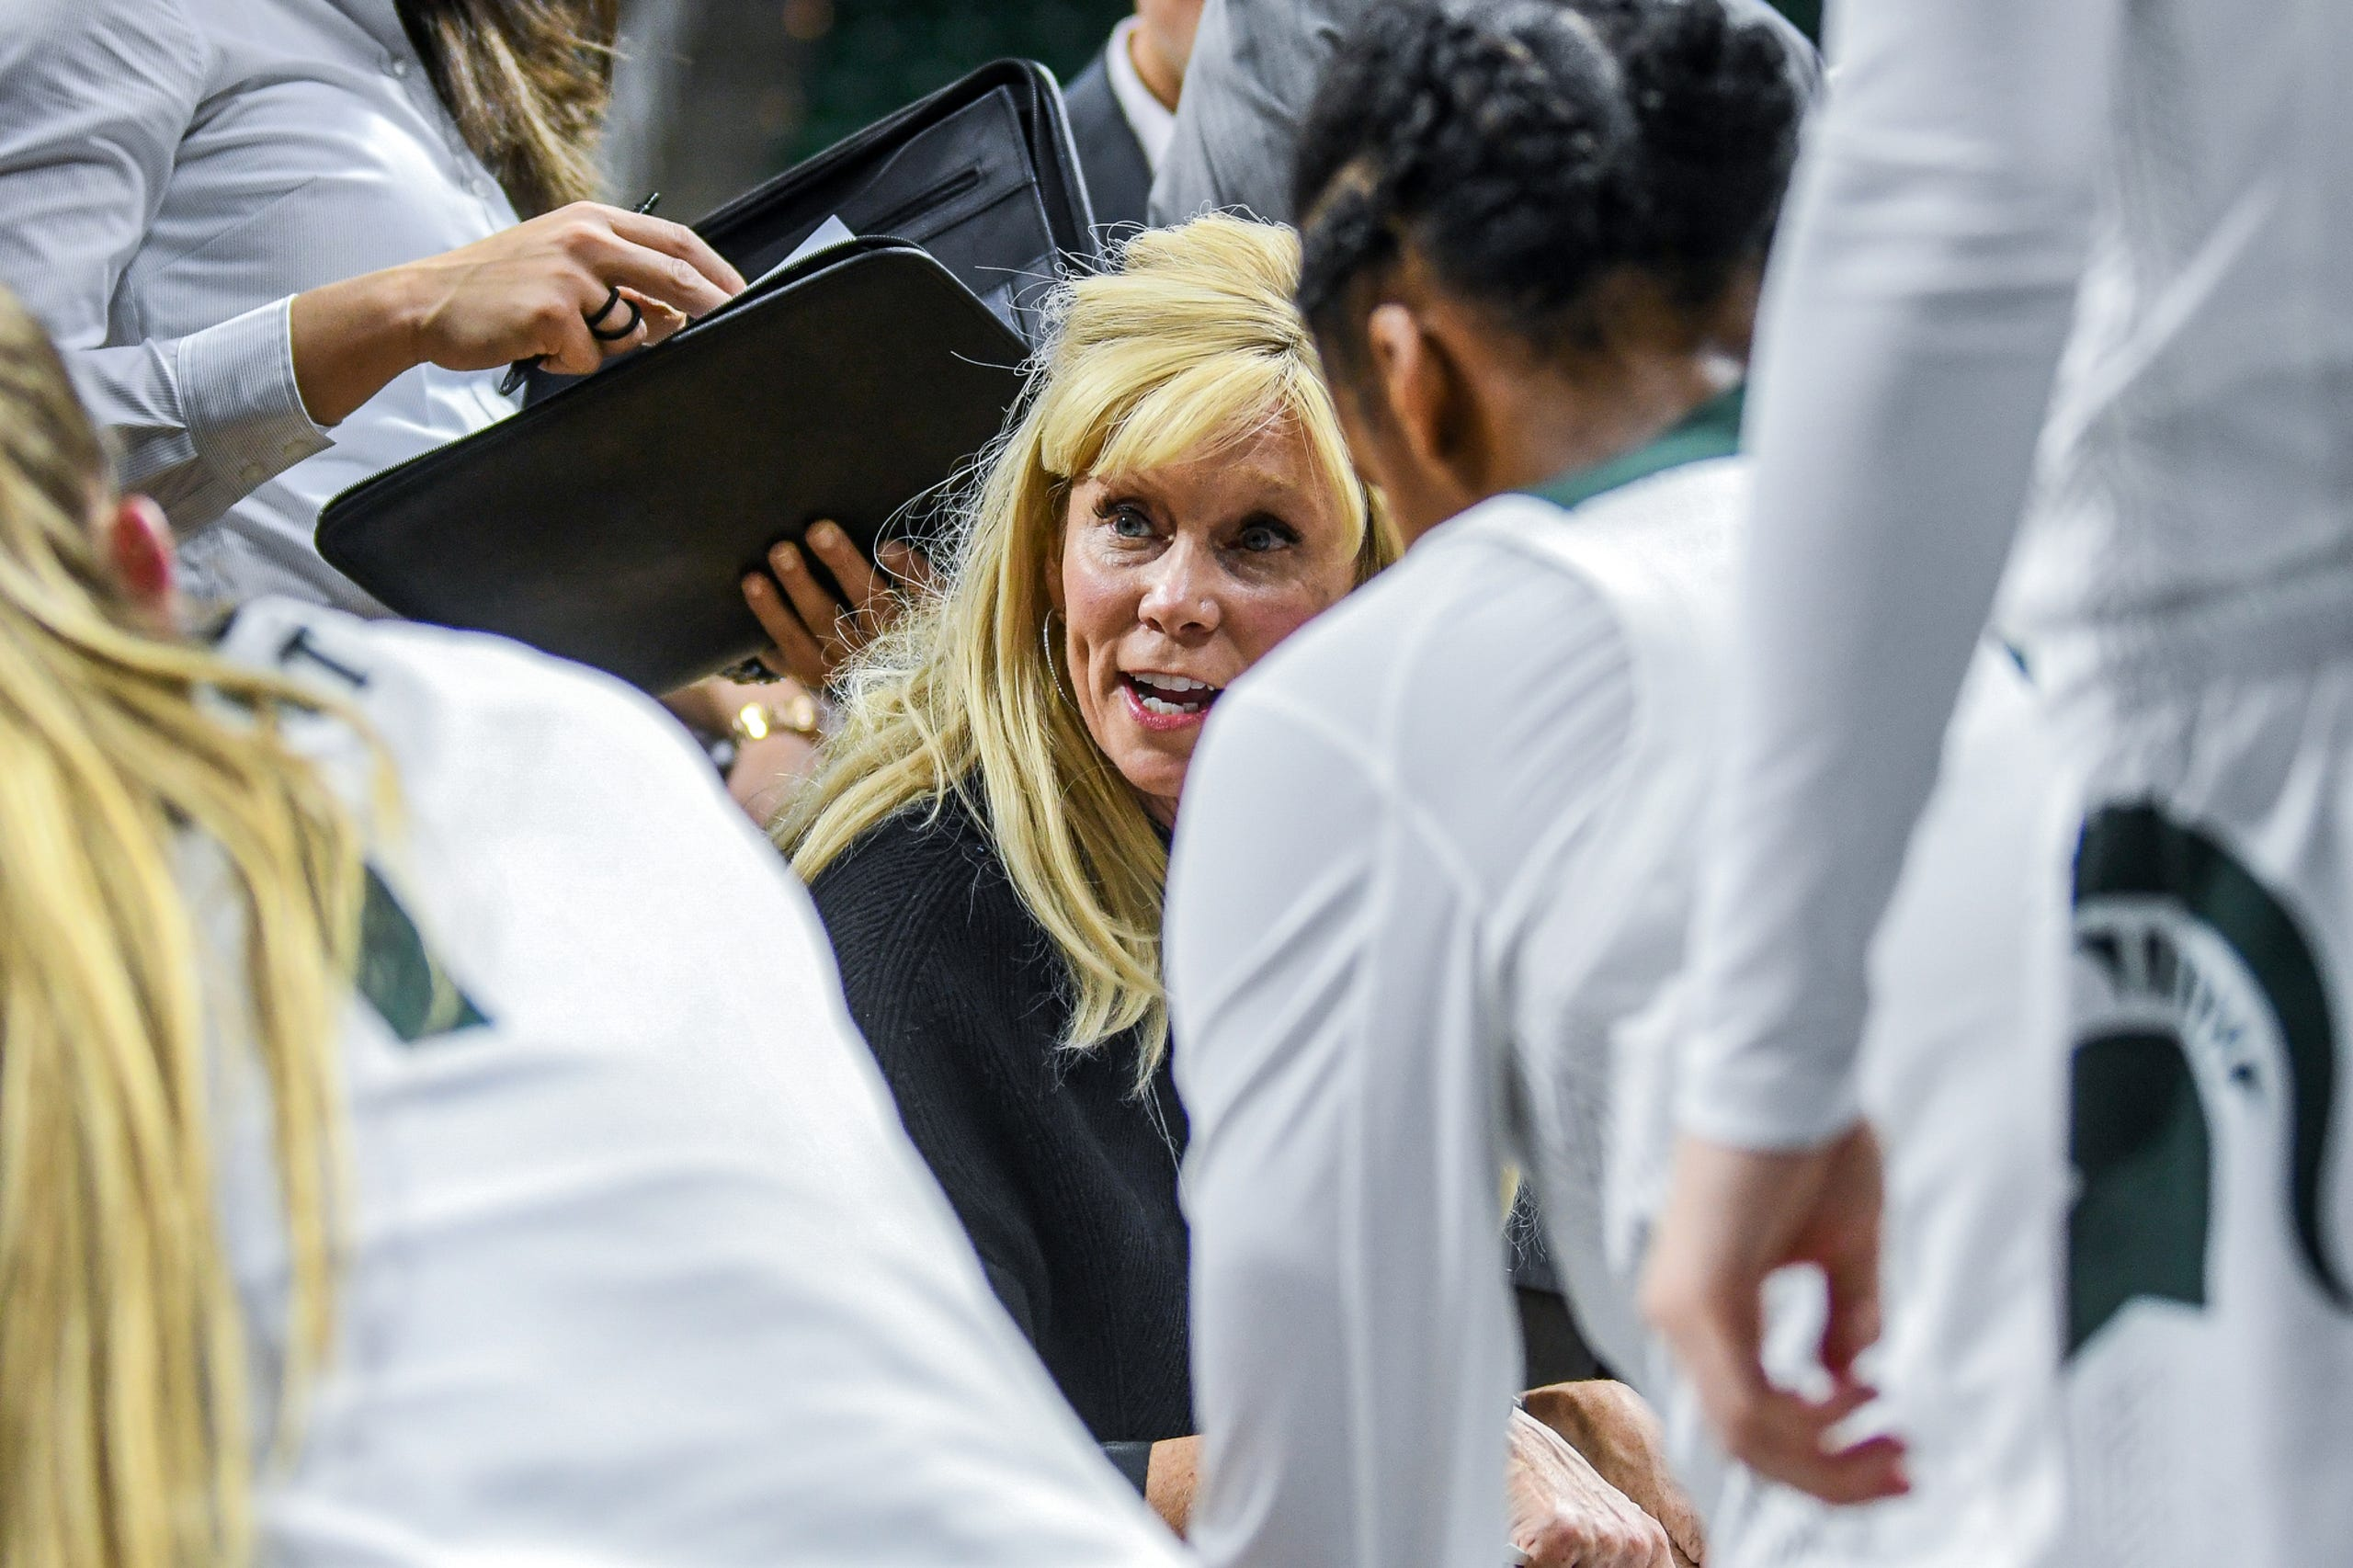 Michigan State's head coach Suzy Merchant talks with players during the second quarter on Tuesday, Nov. 5, 2019, at the Breslin Center in East Lansing.